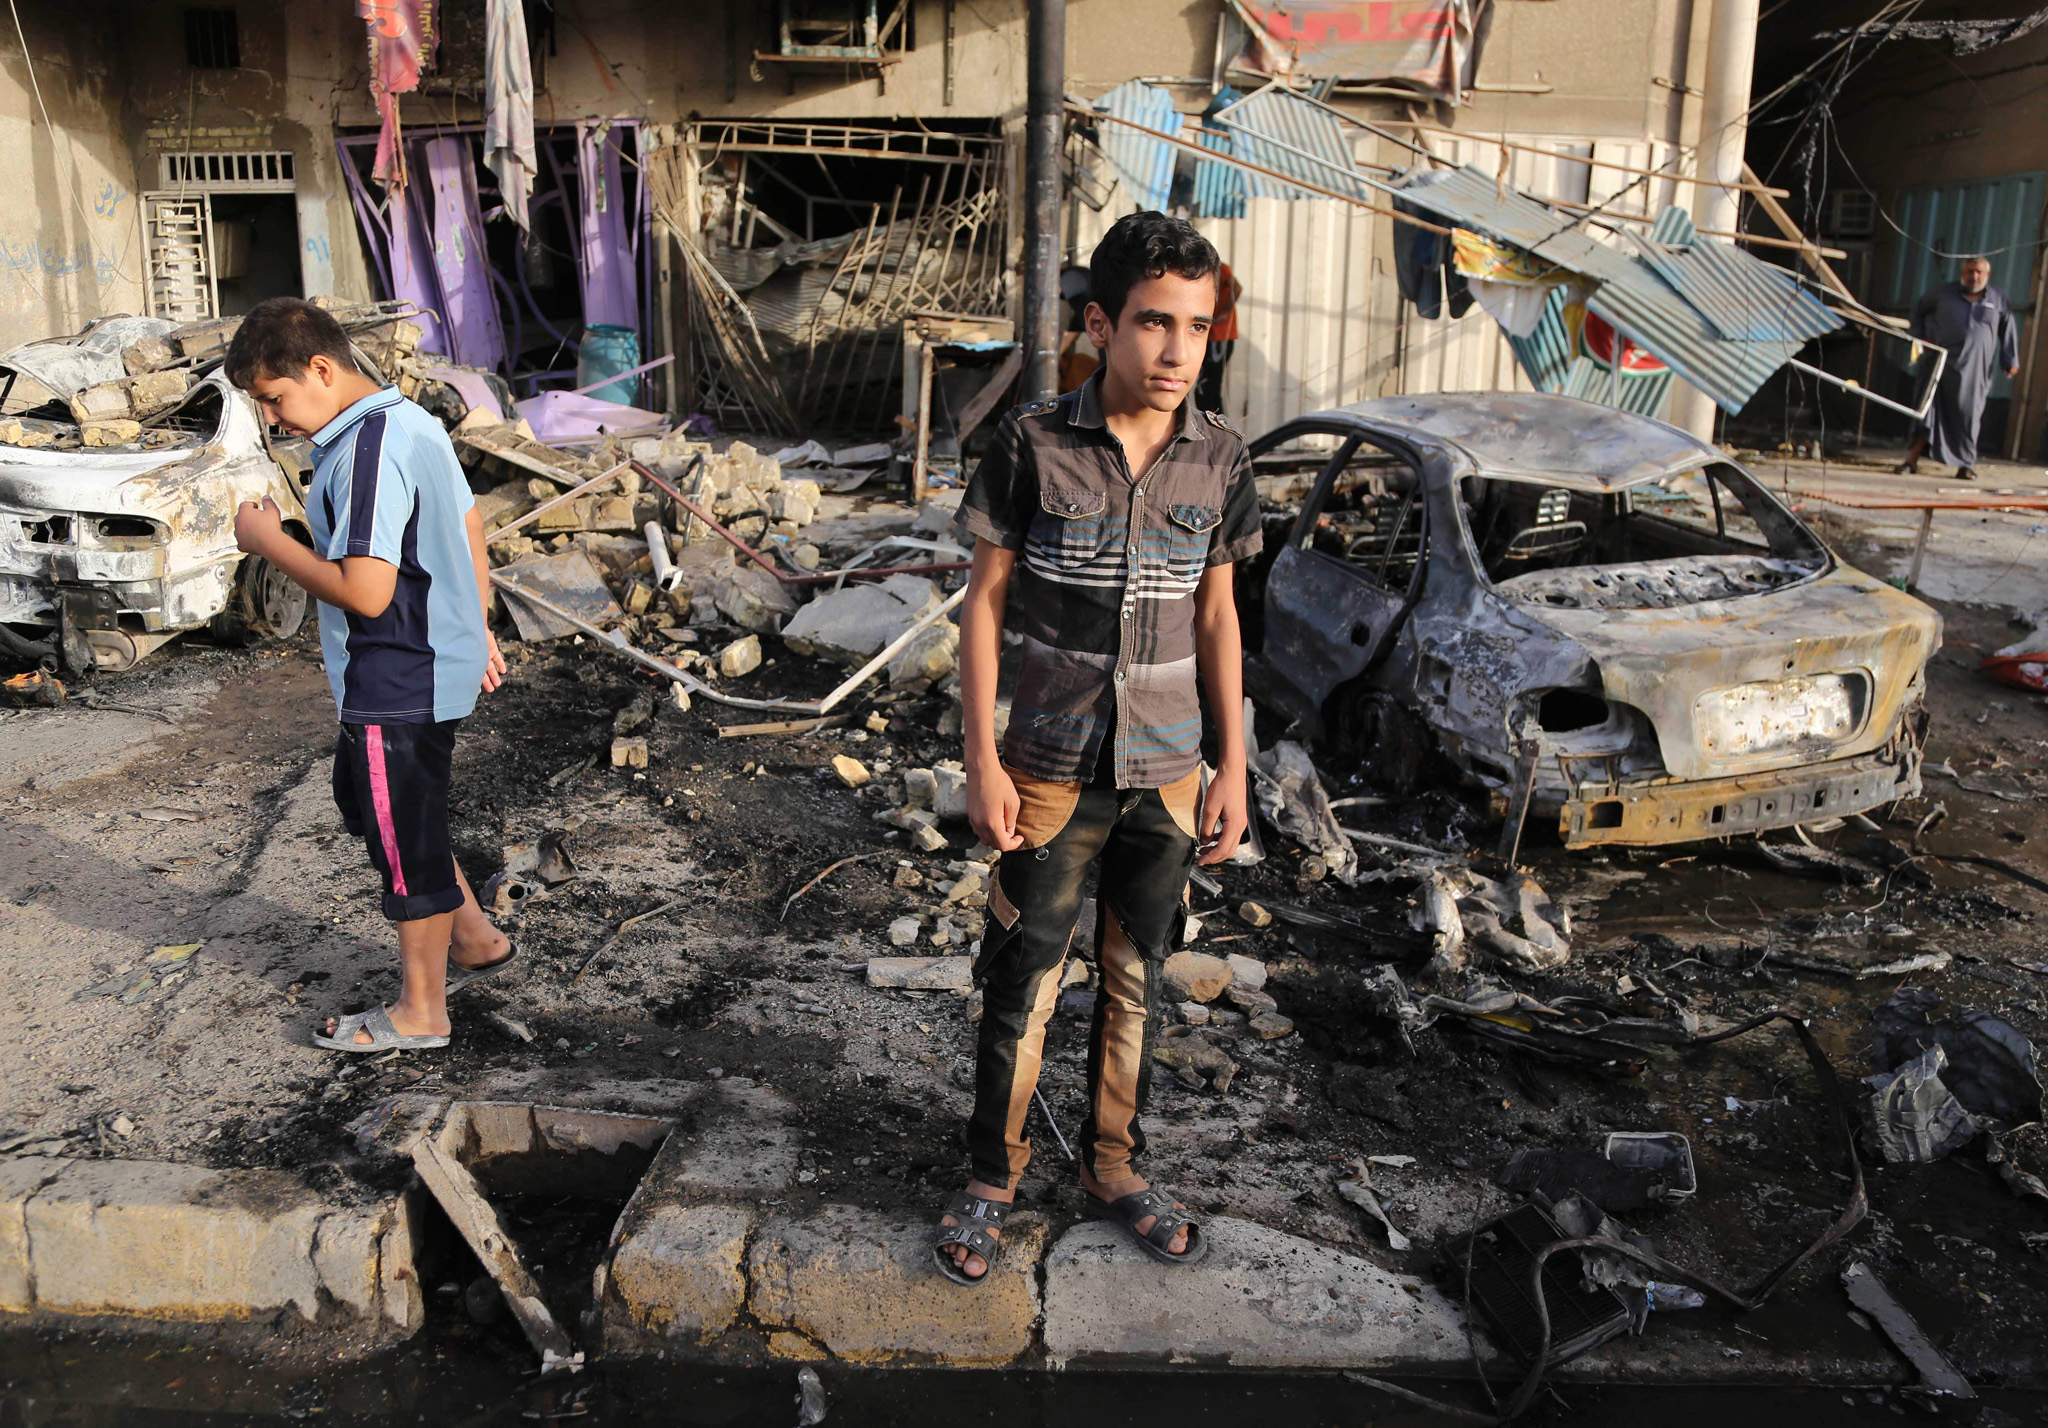 Boys inspect the site of double car bombings in the northern Shiite district al-Hurriyah in Baghdad, Iraq, Wednesday, Oct. 1, 2014. On Tuesday, officials say a wave of bombings targeted commercial areas across Iraq, killing and wounding dozens of people. (AP Photo/Karim Kadim)